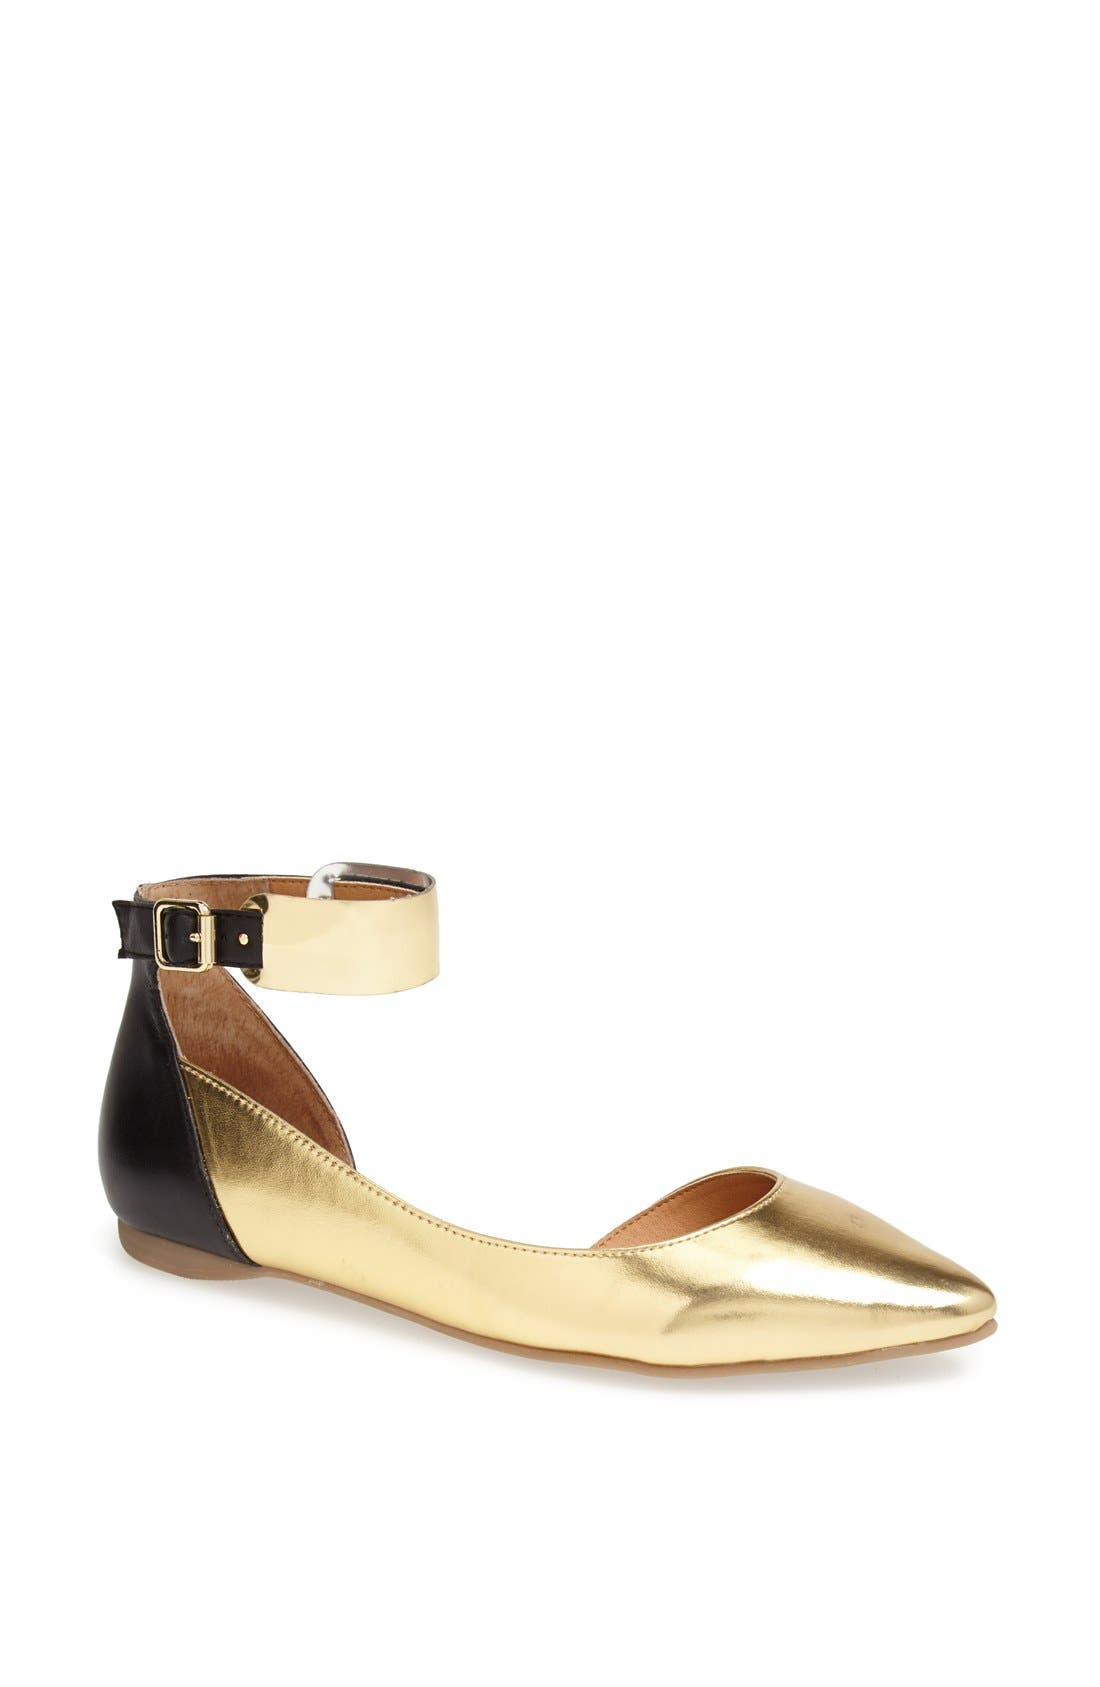 Main Image - Kenneth Cole Reaction 'Pose Off 2' Cuff Ankle Strap Half d'Orsay Sandal